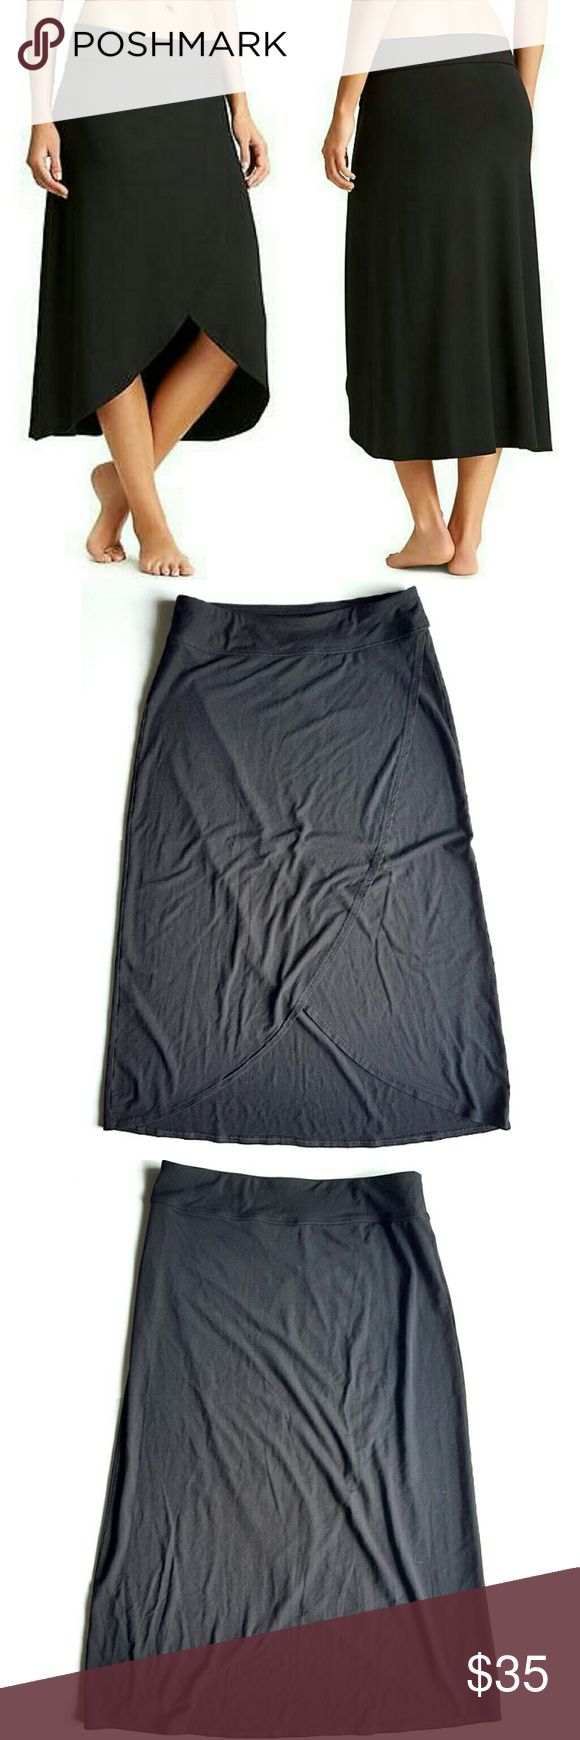 "Athleta Black Ribbon Skirt So comfortable. Elastic waistband and wrap front Hi-Low fit. 15"" waist,  30"" long.  In excellent LIKE NEW condition. Athleta Skirts Midi"